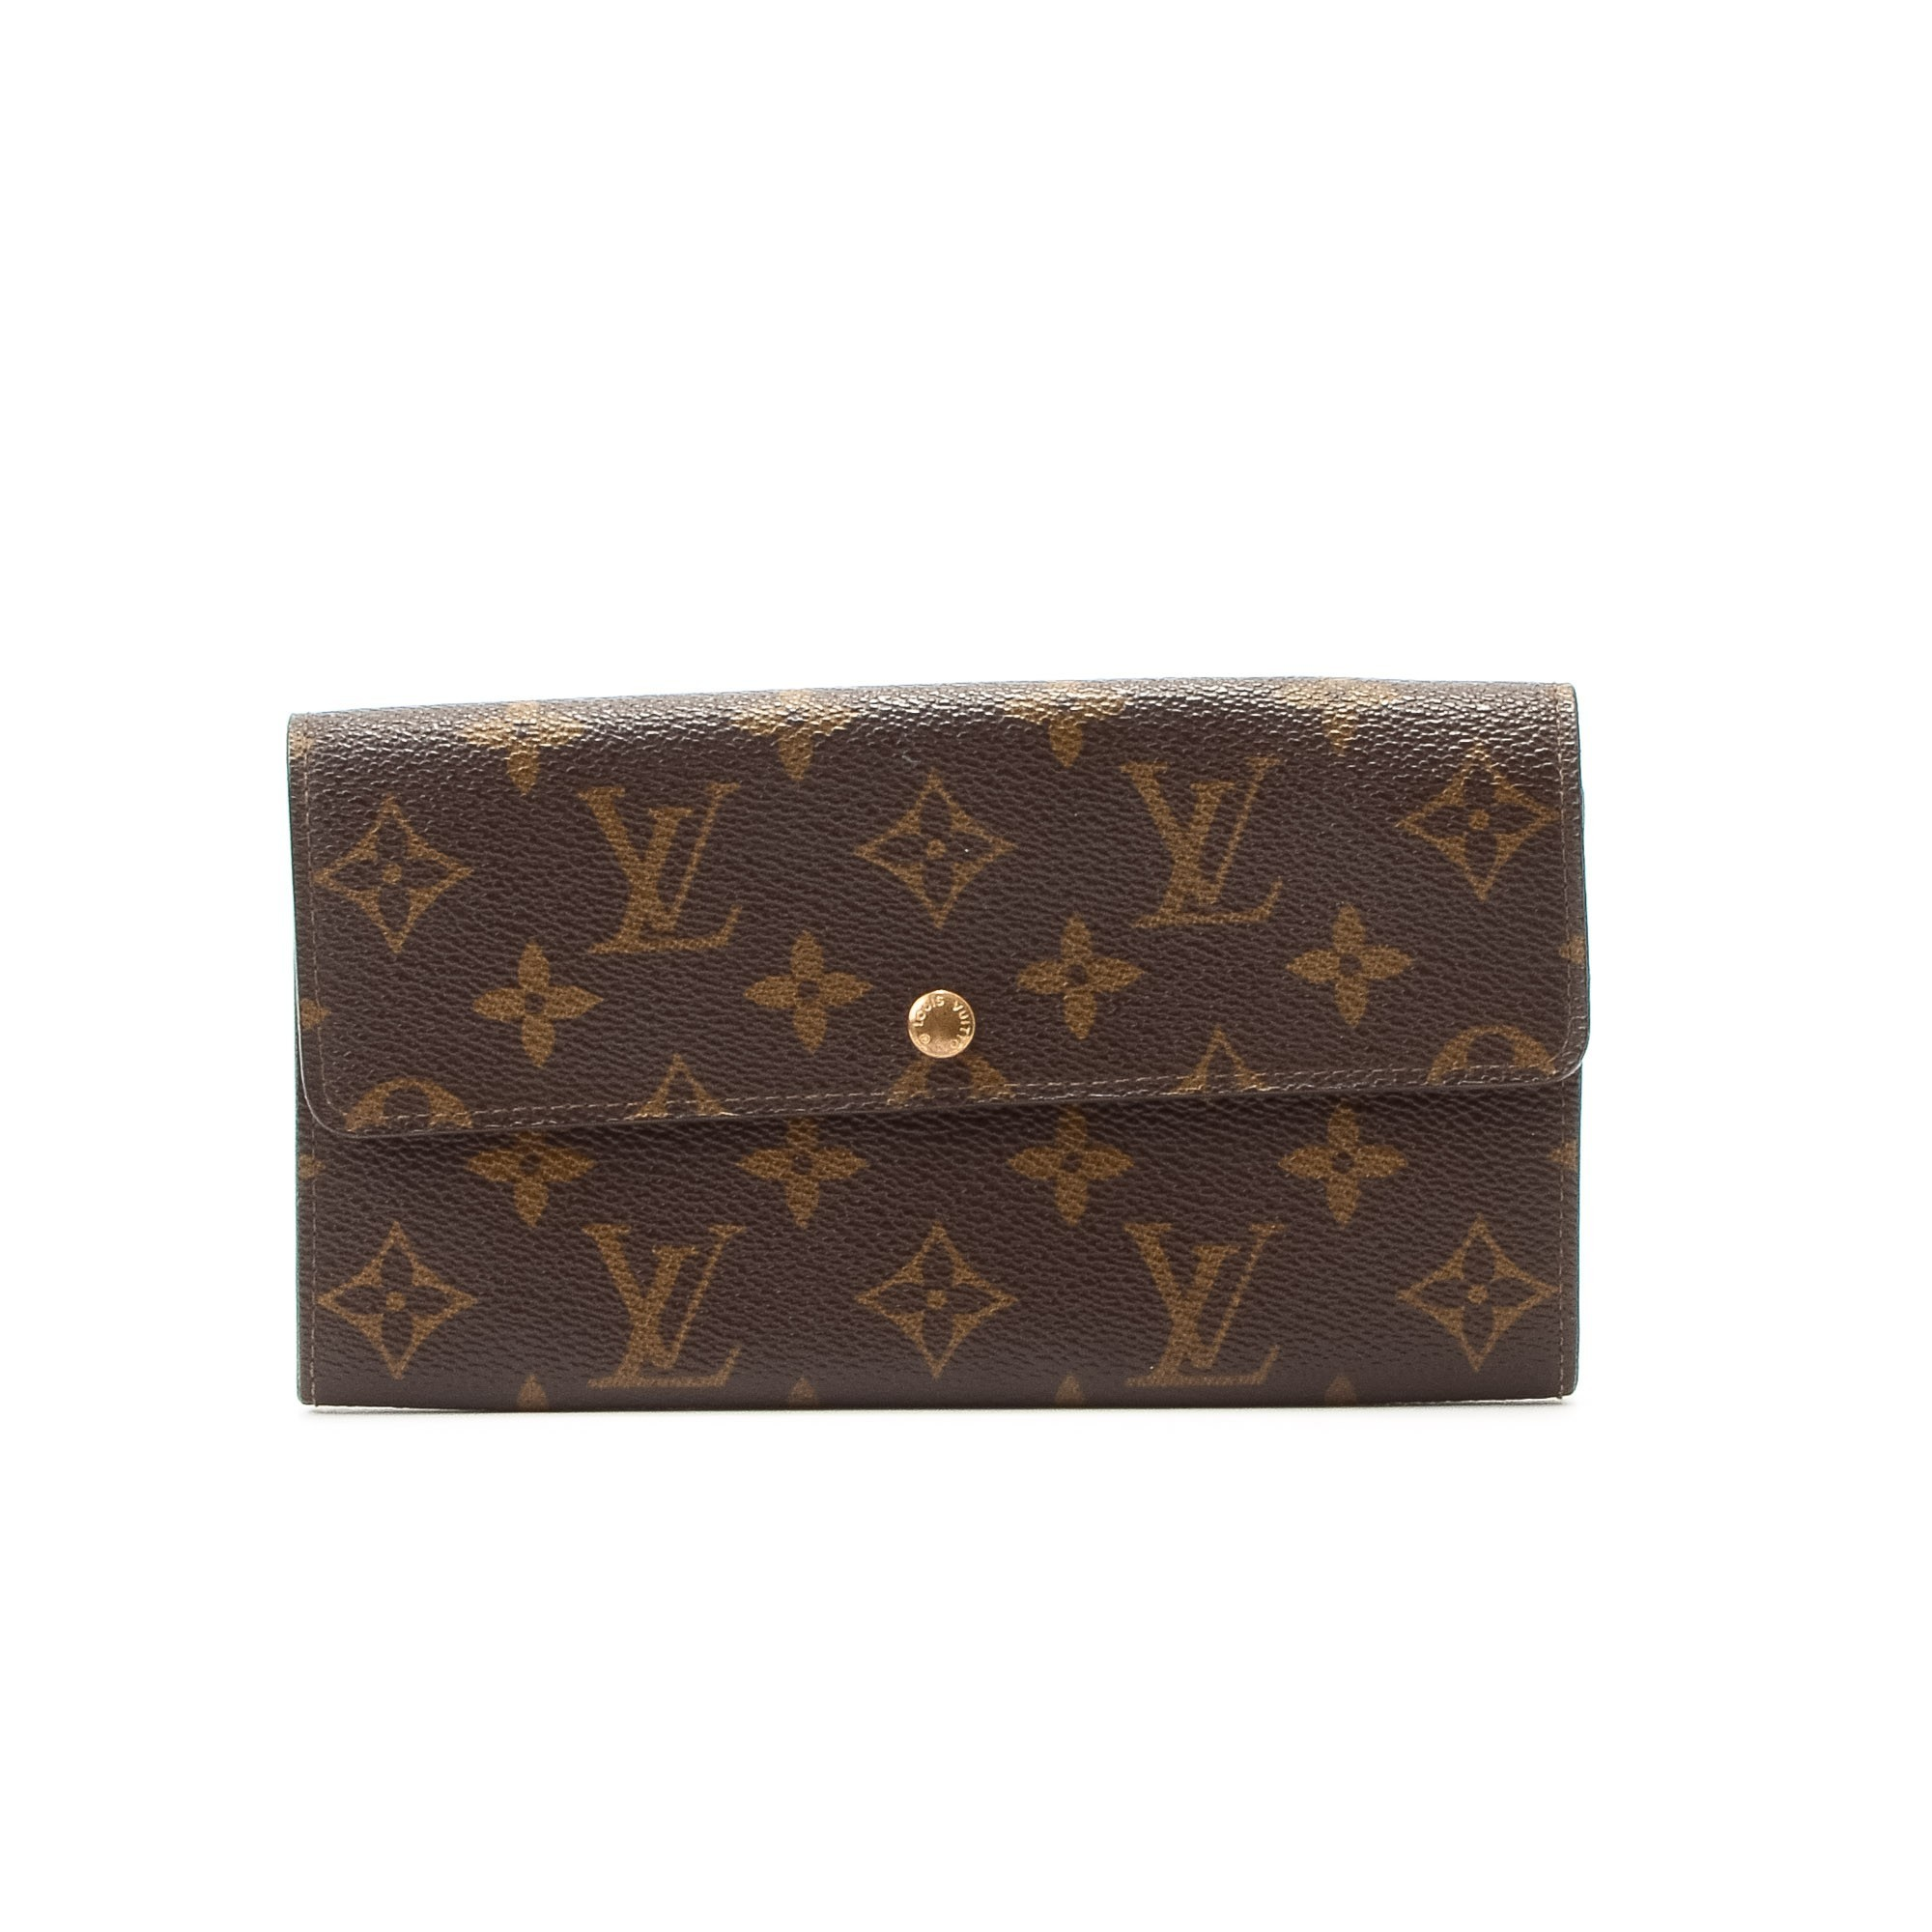 louis vuitton wallets � steemit